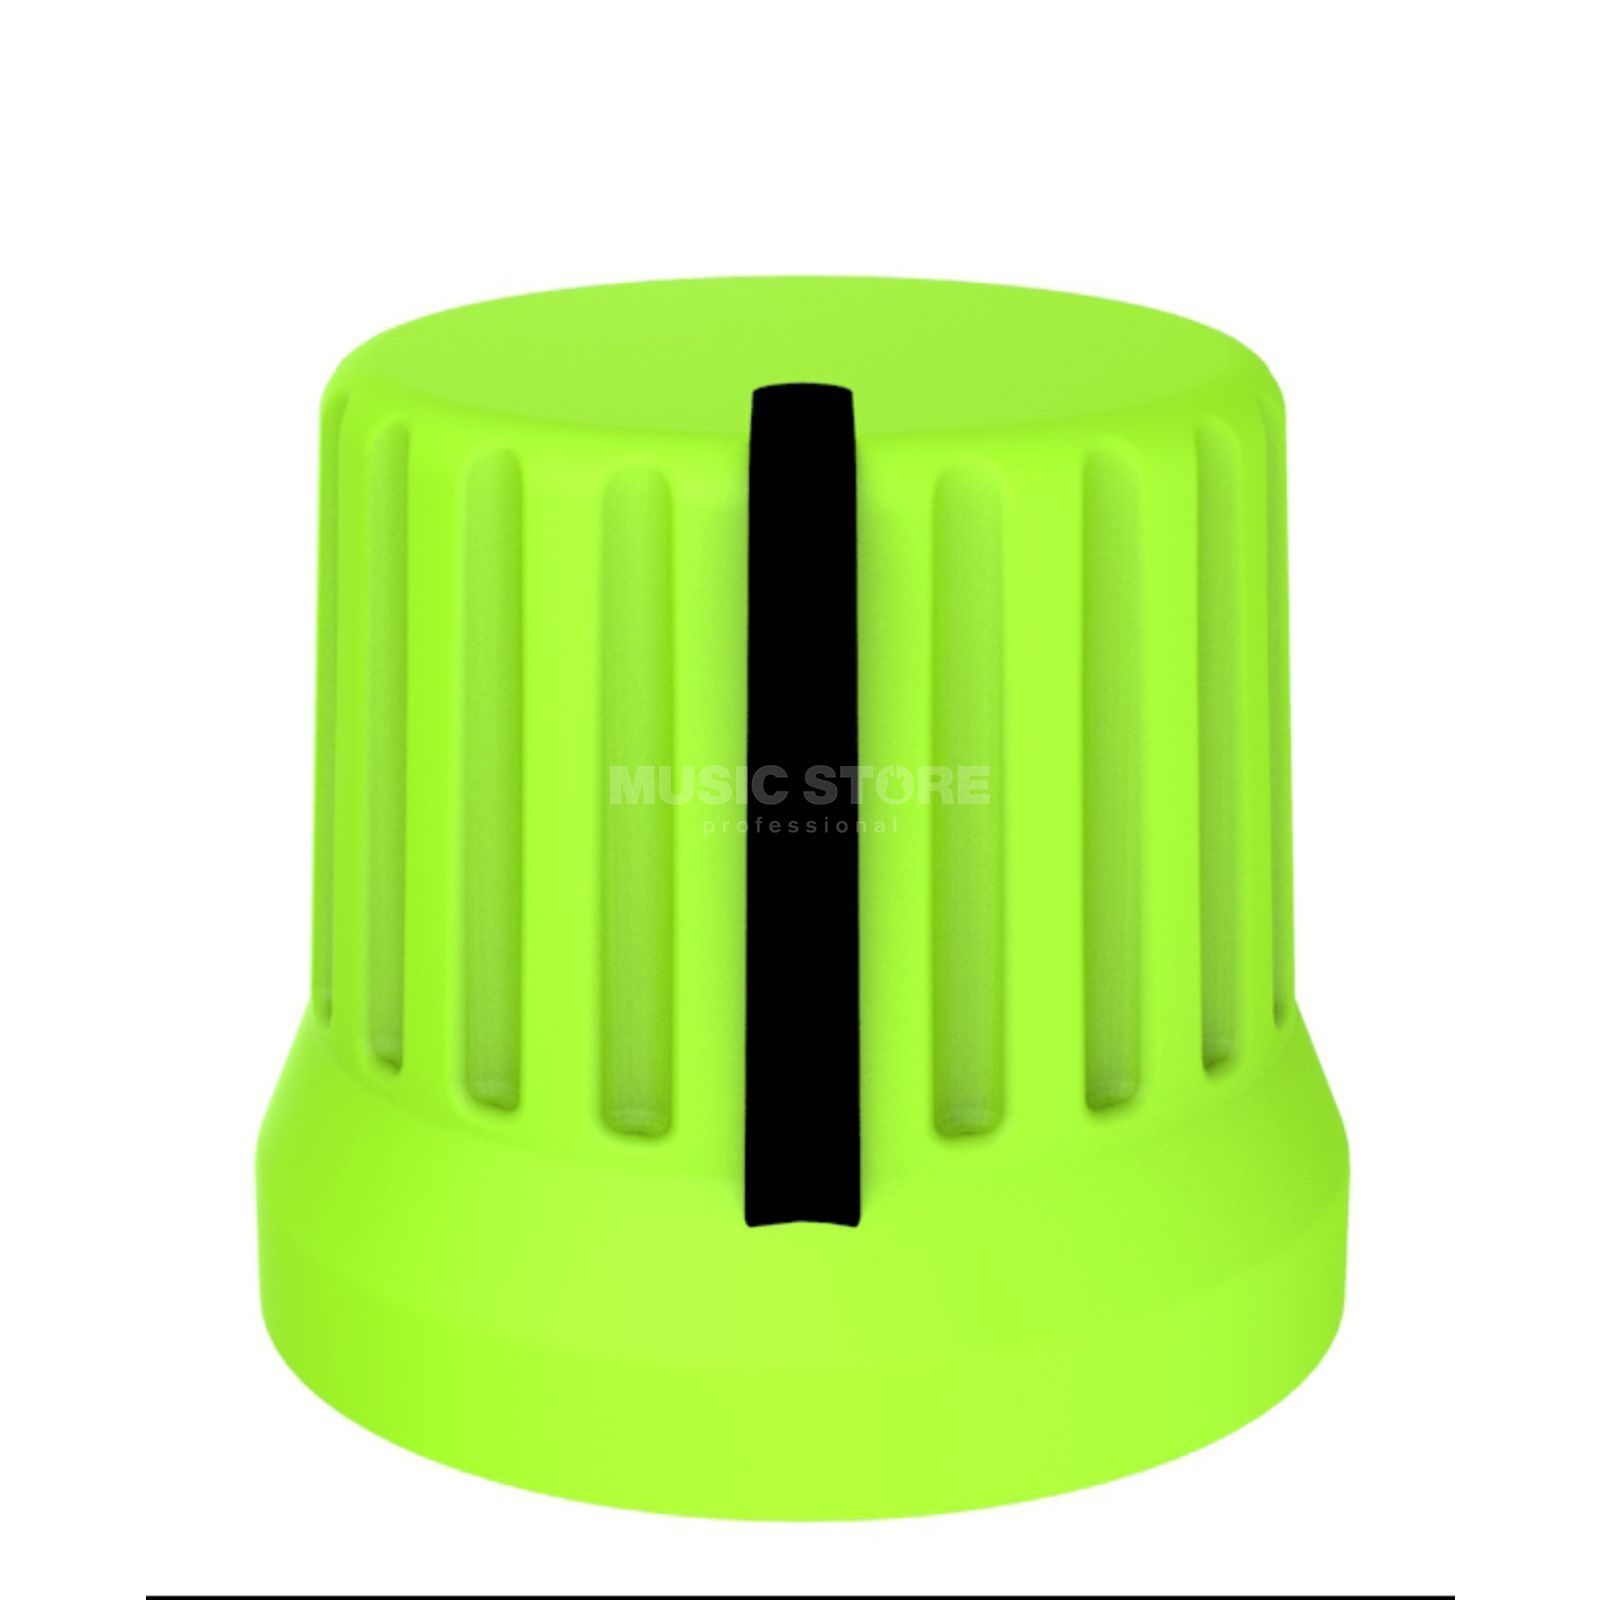 DJ TECHTOOLS Chroma Caps Fatty knop green  Productafbeelding